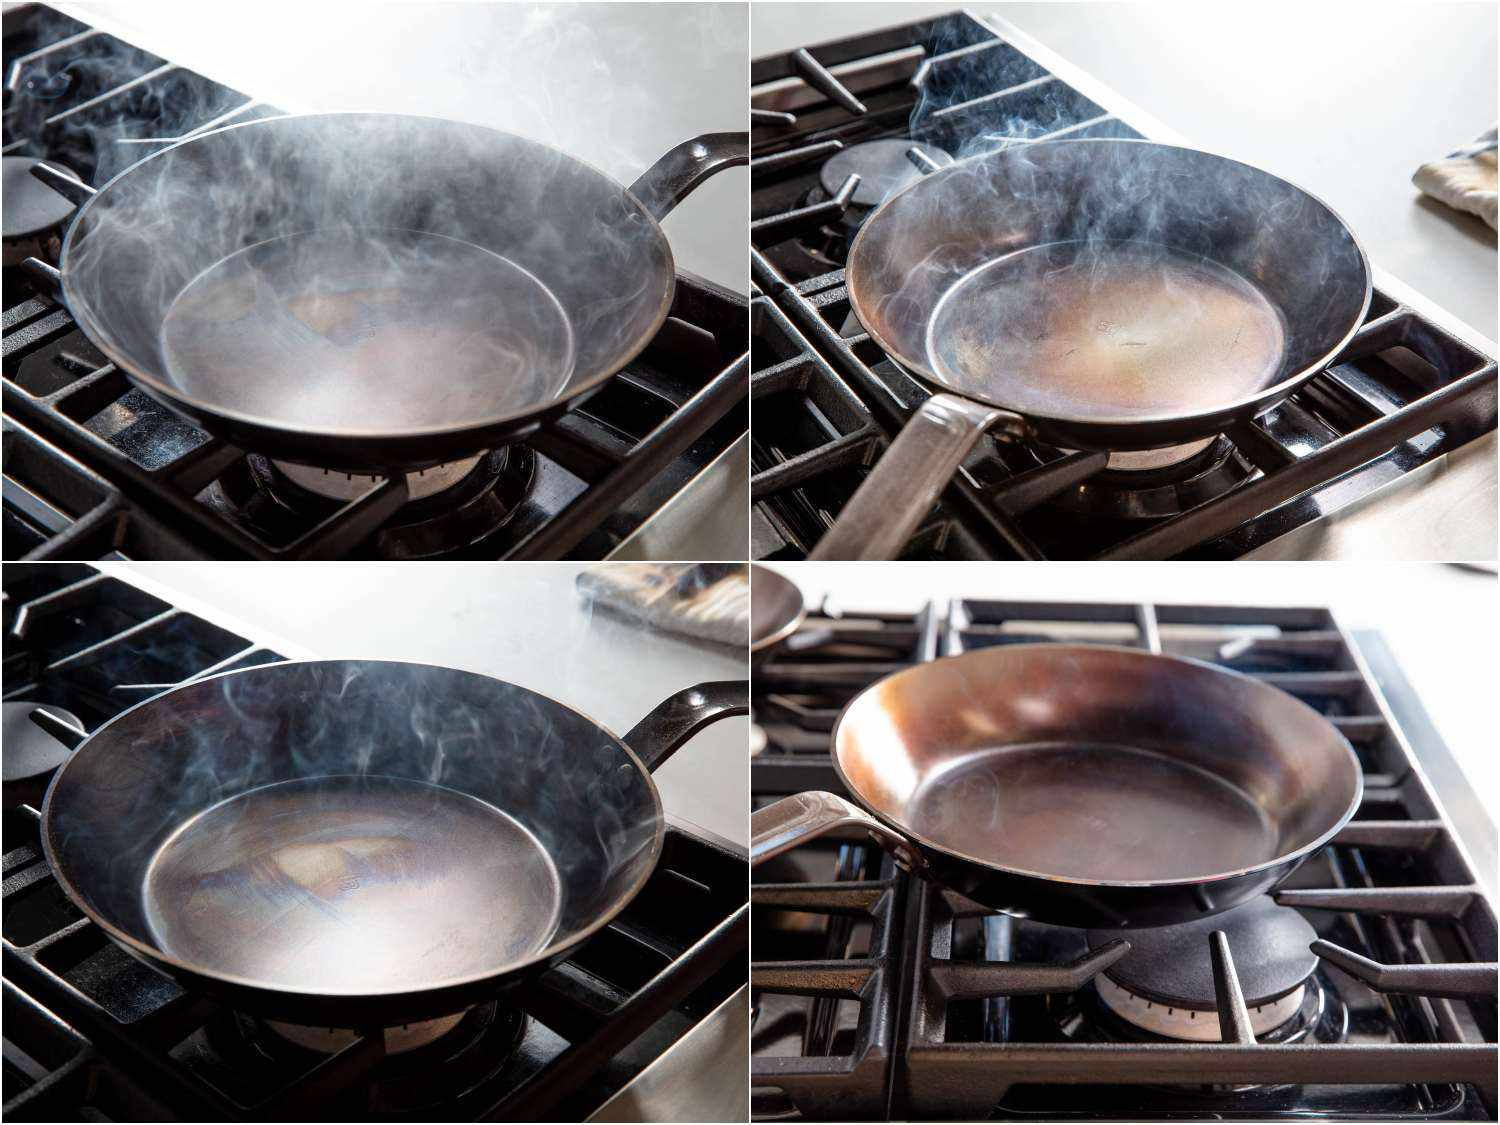 Burning seasoning onto a carbon steel pan; the sequence shows a pan smoking heavily, and eventually the smoke fades.